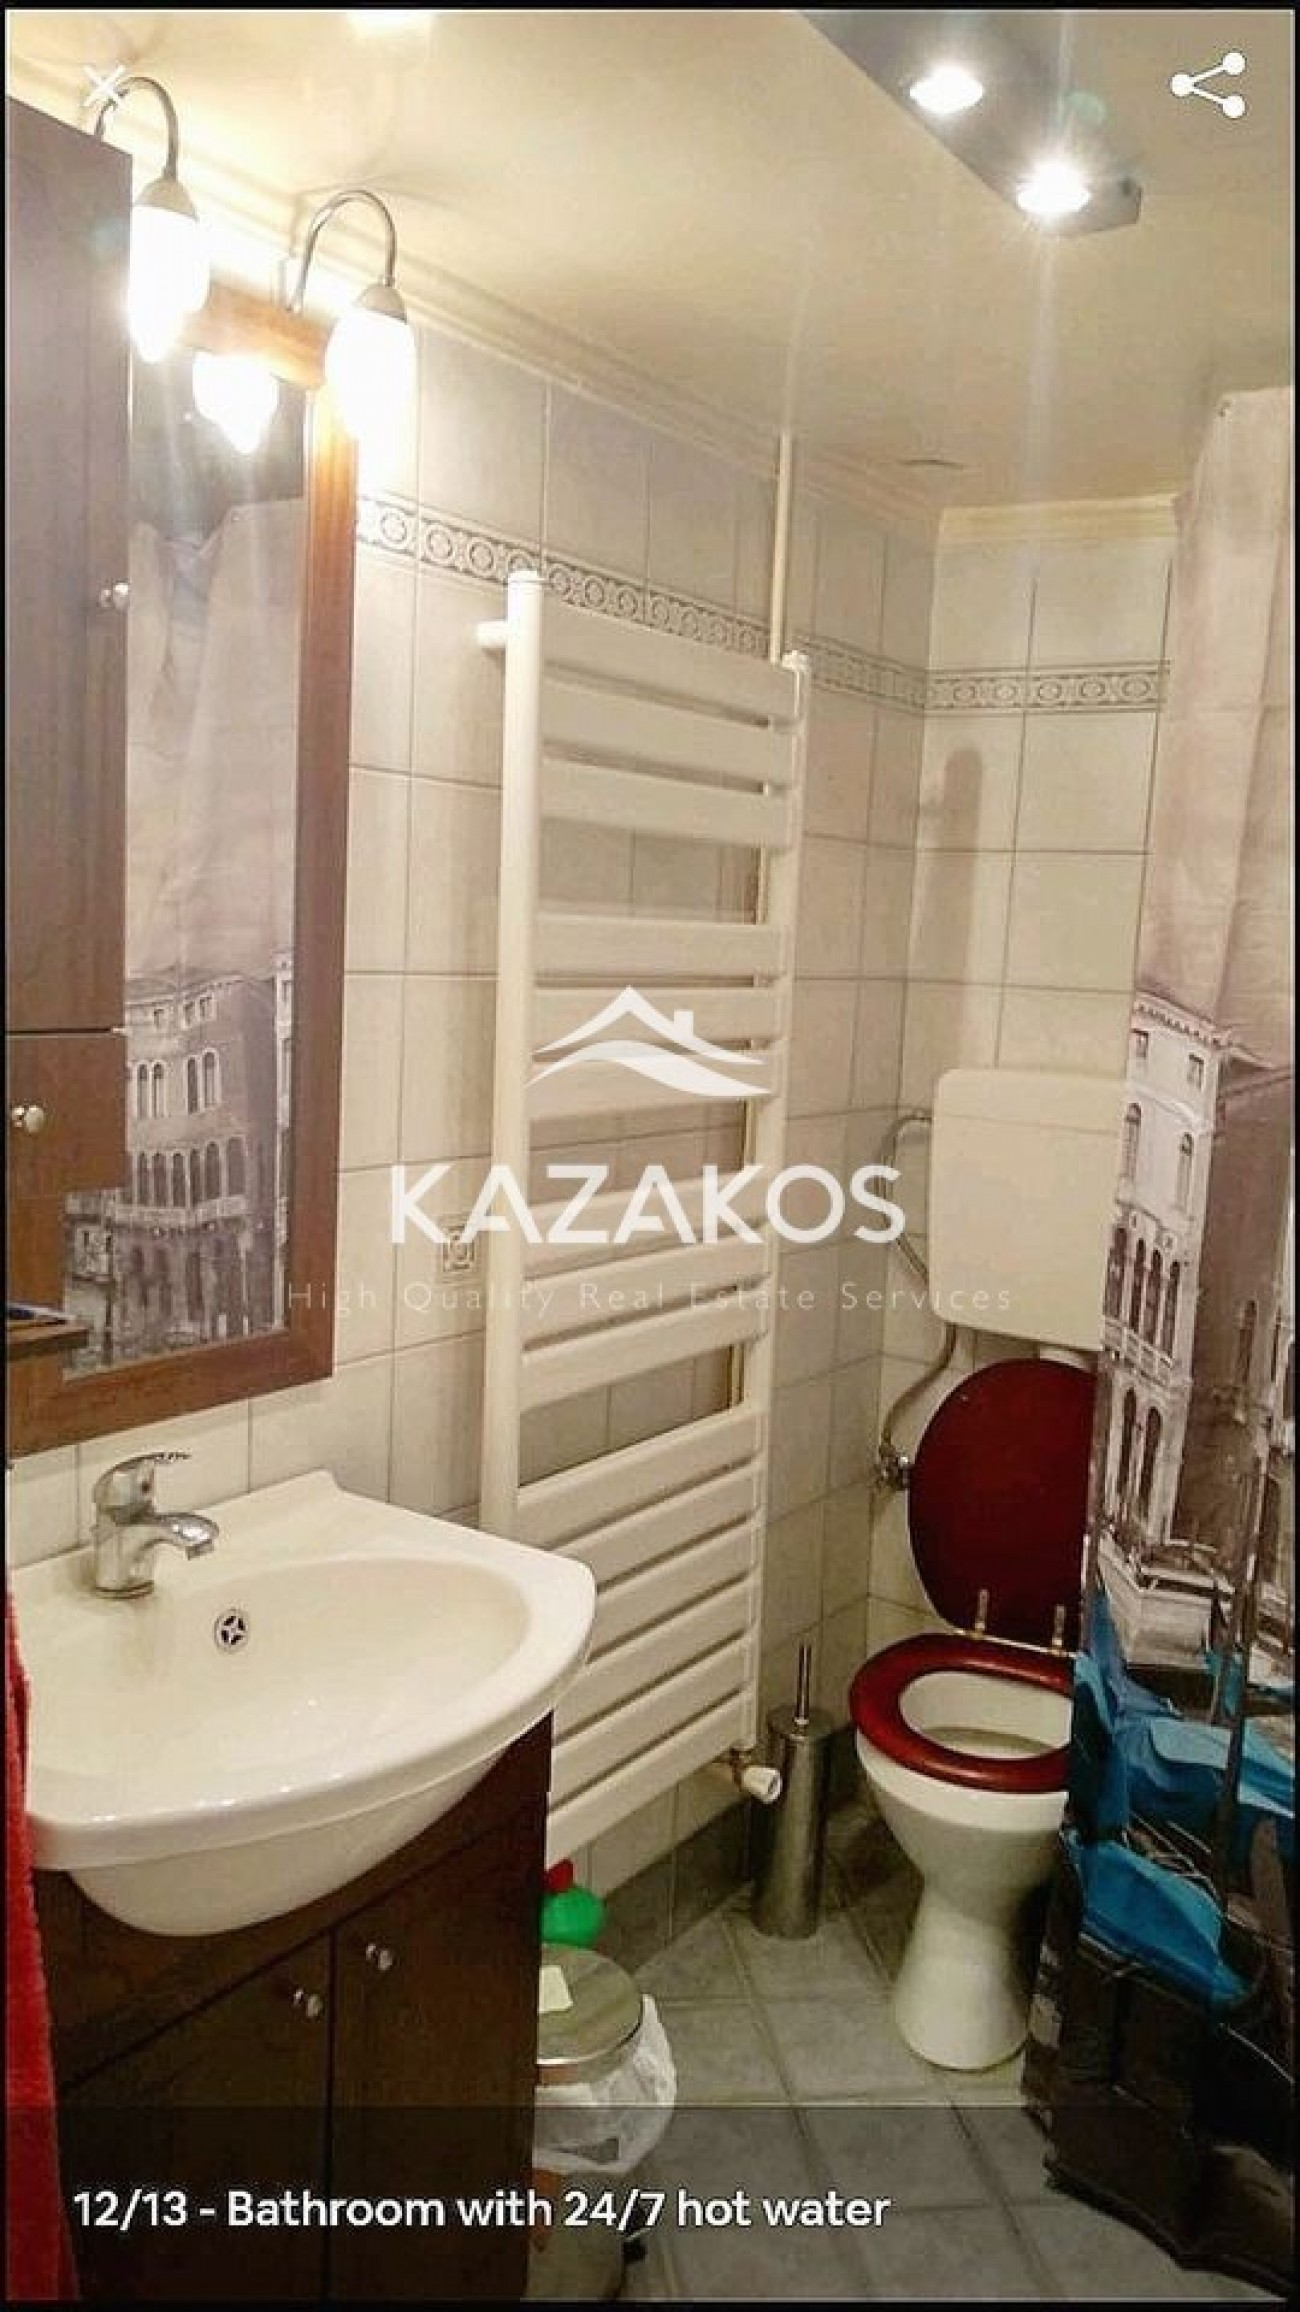 House for Sale in Kallithea, Central & South Region of Athens, Greece